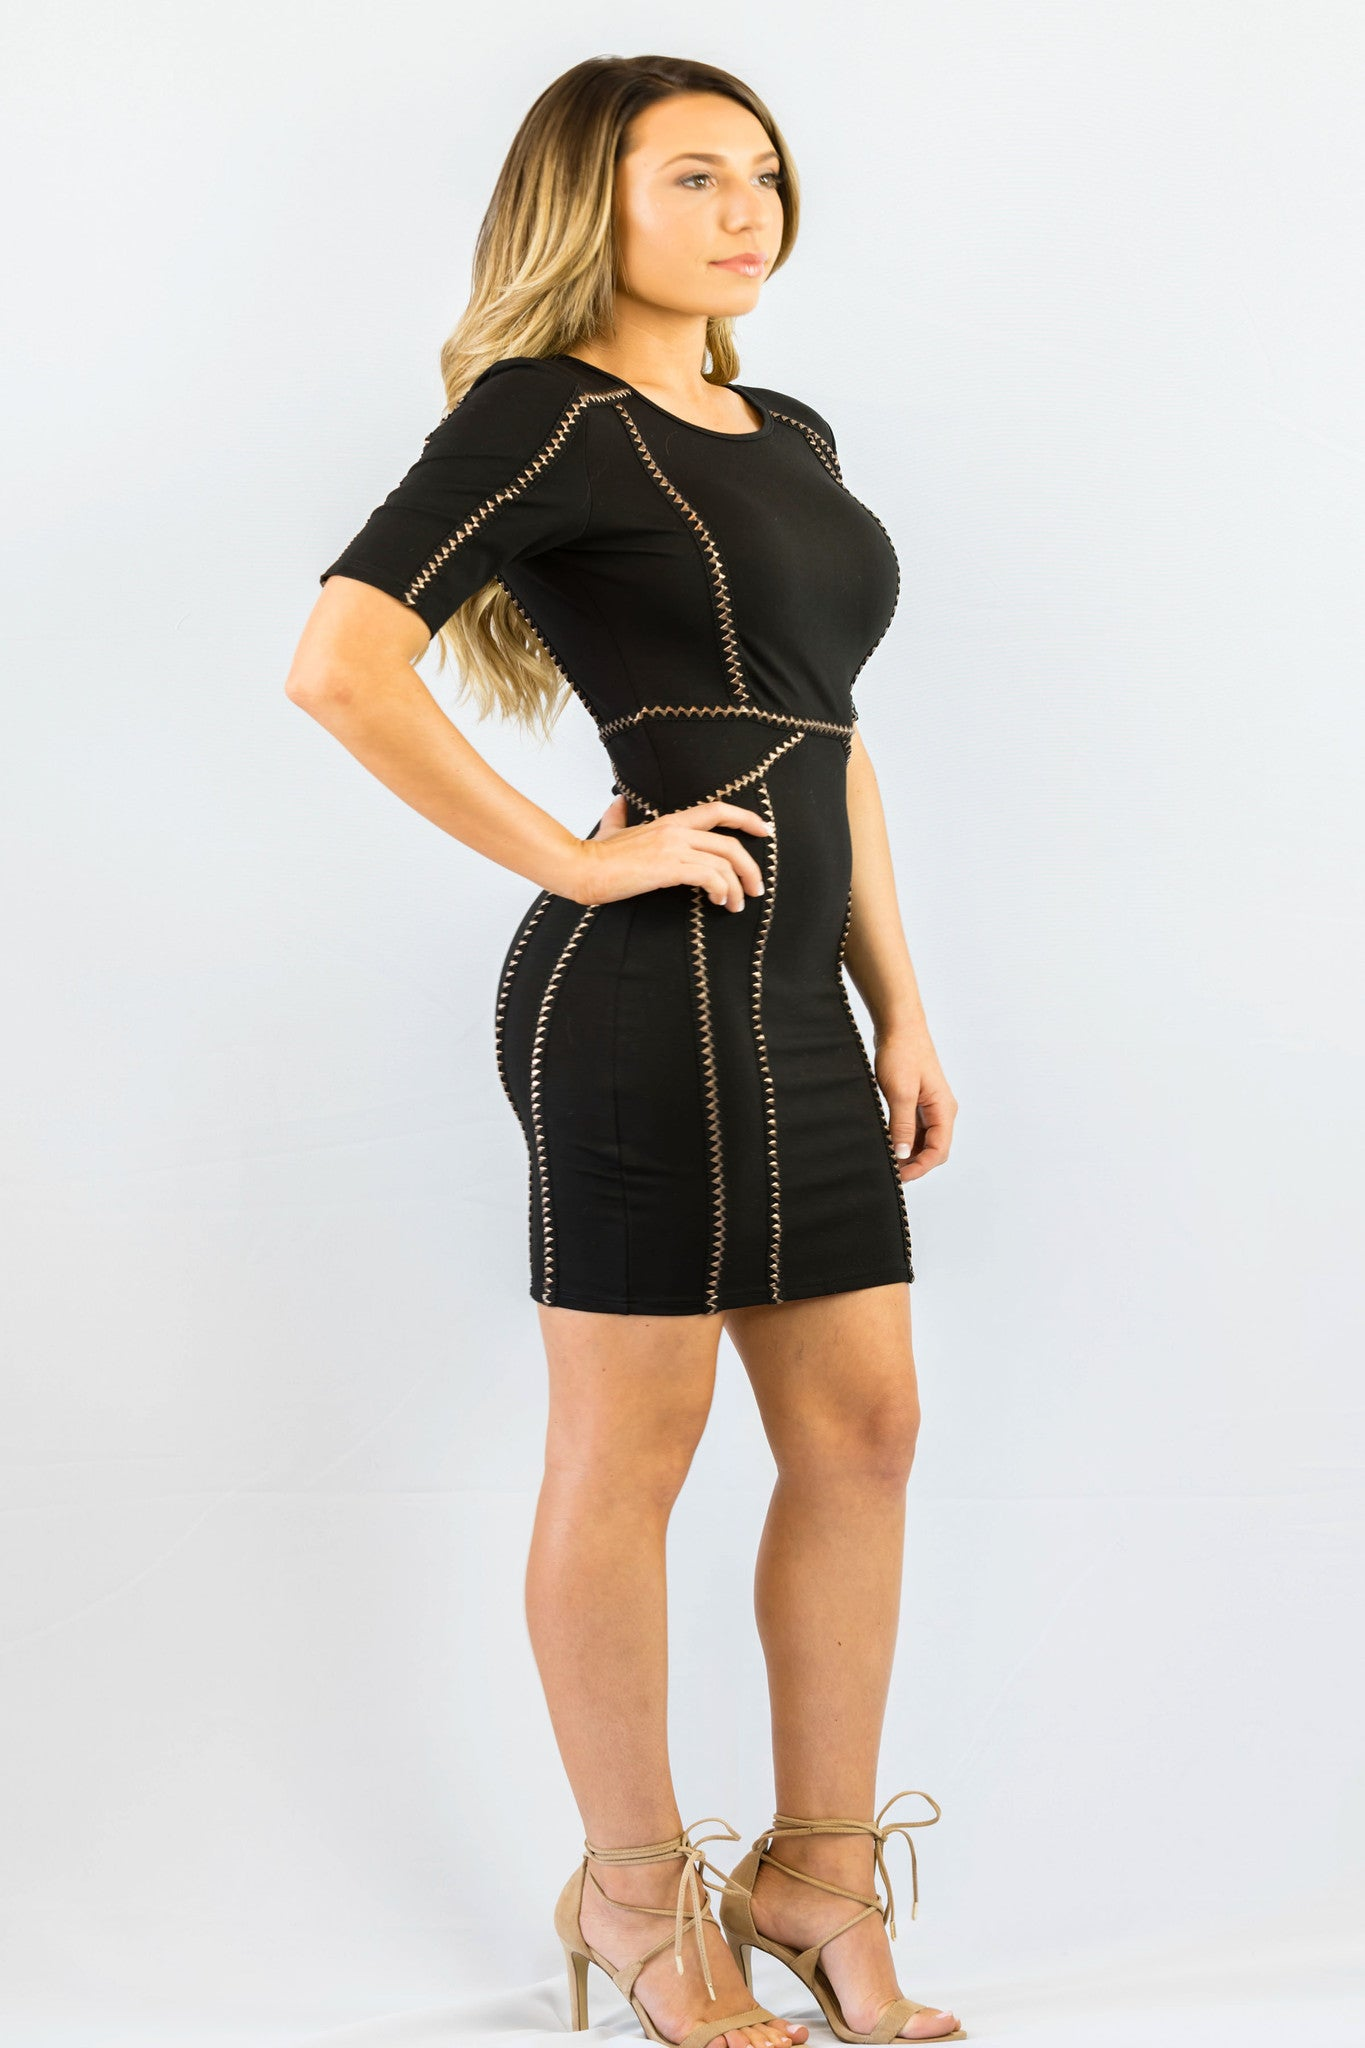 WYLDR Ballin Black Jersey Bodycon Dress With Trim Detail - DRESSES - WYLDR - Free Vibrationz - 4